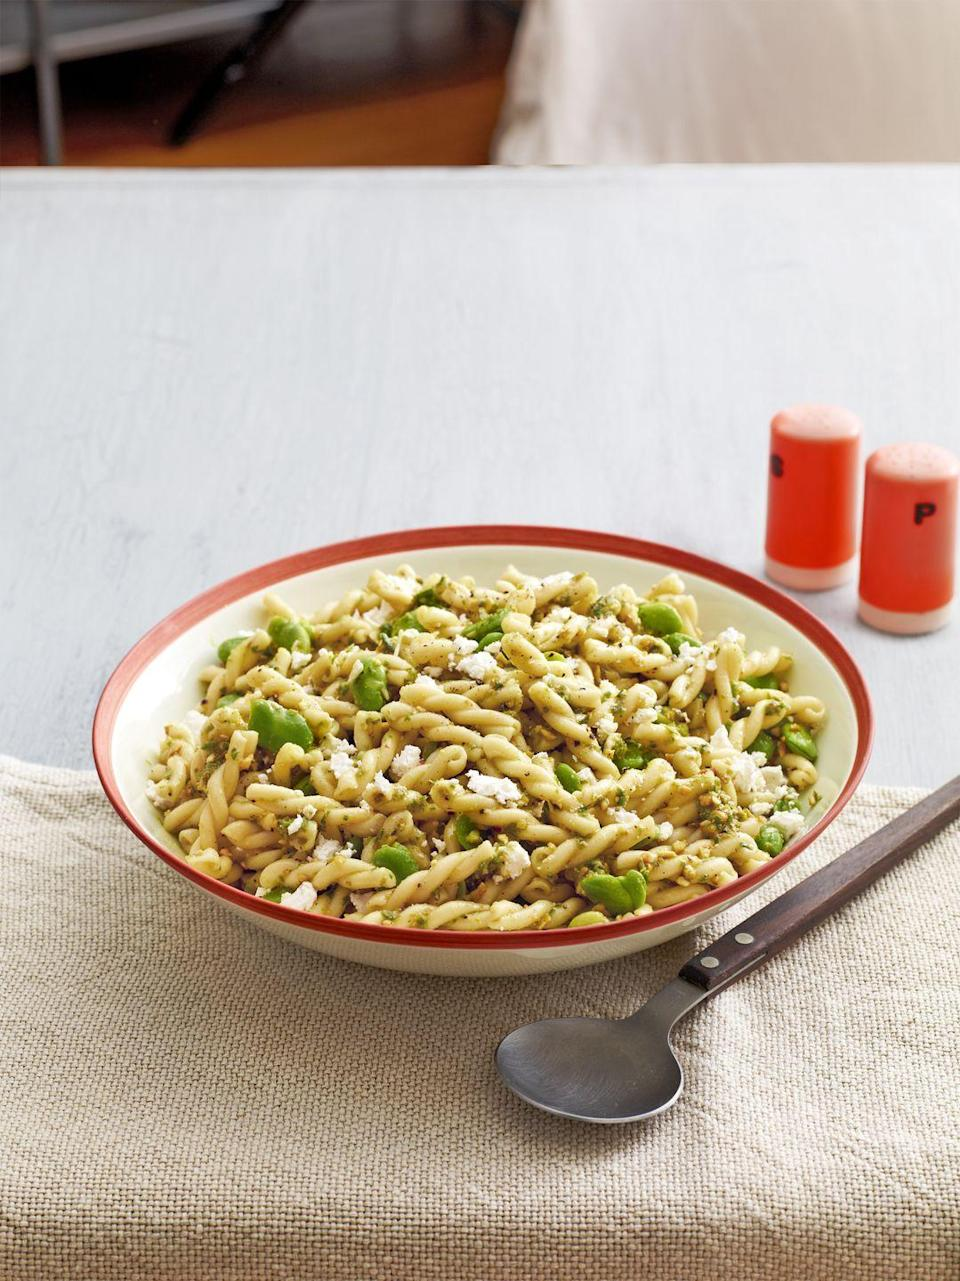 """<p>Lighten up! Reduce Parmesan, pistachios, and olive oil each to 1/3 cup, add 1/4 cup water, and substitute in low-fat feta. Total savings? 110 calories and 12 fat grams per serving.</p><p><strong><a href=""""https://www.countryliving.com/food-drinks/recipes/a5137/fava-bean-pasta-salad-garlic-scape-pesto-recipe-clx0514/"""" rel=""""nofollow noopener"""" target=""""_blank"""" data-ylk=""""slk:Get the recipe."""" class=""""link rapid-noclick-resp"""">Get the recipe.</a></strong></p>"""